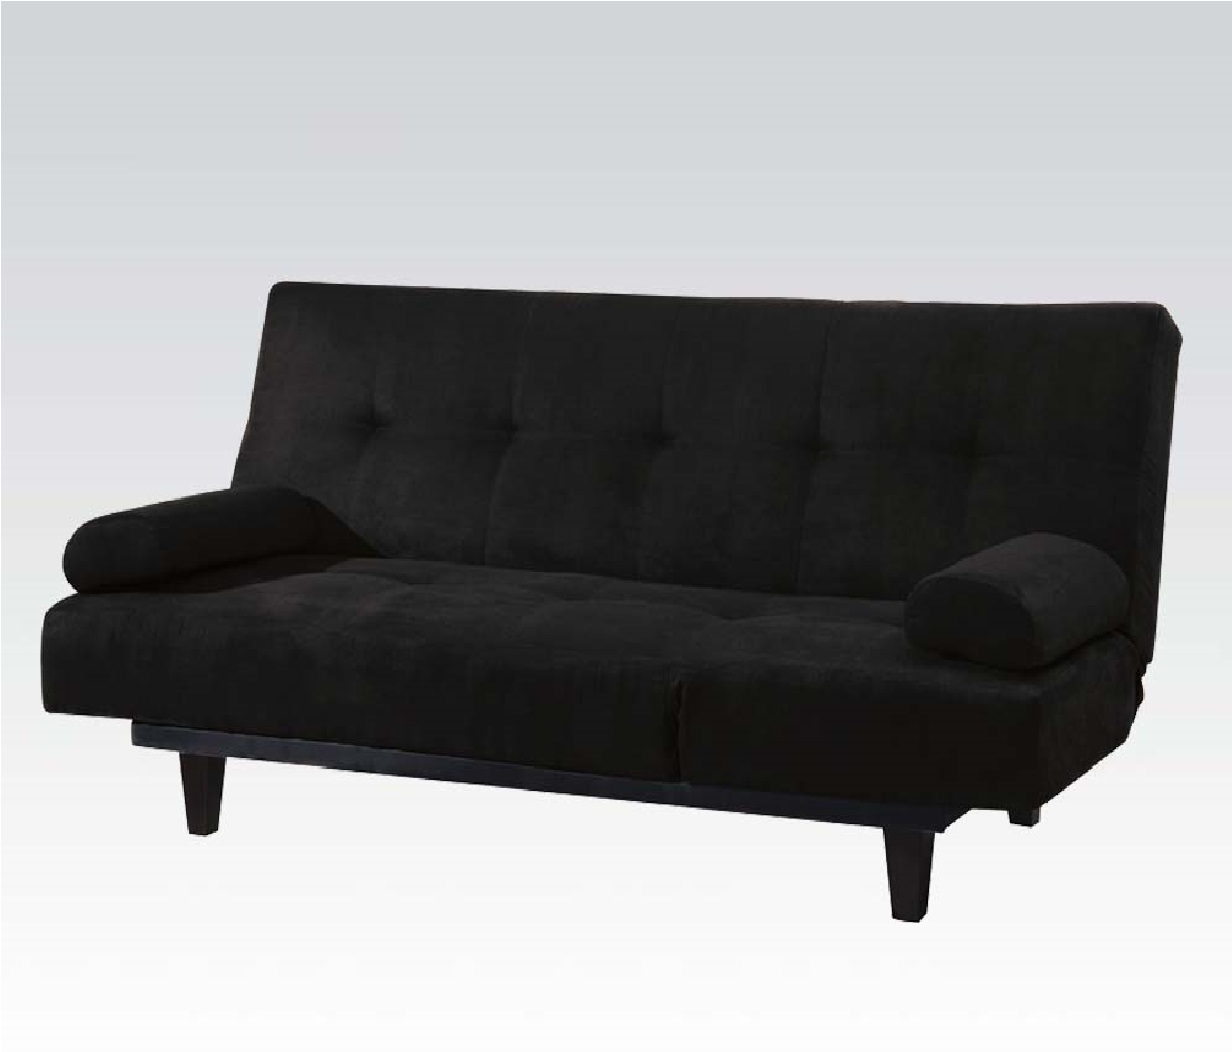 barcelona convertible futon sofa bed and lounger with pillows multiple colors